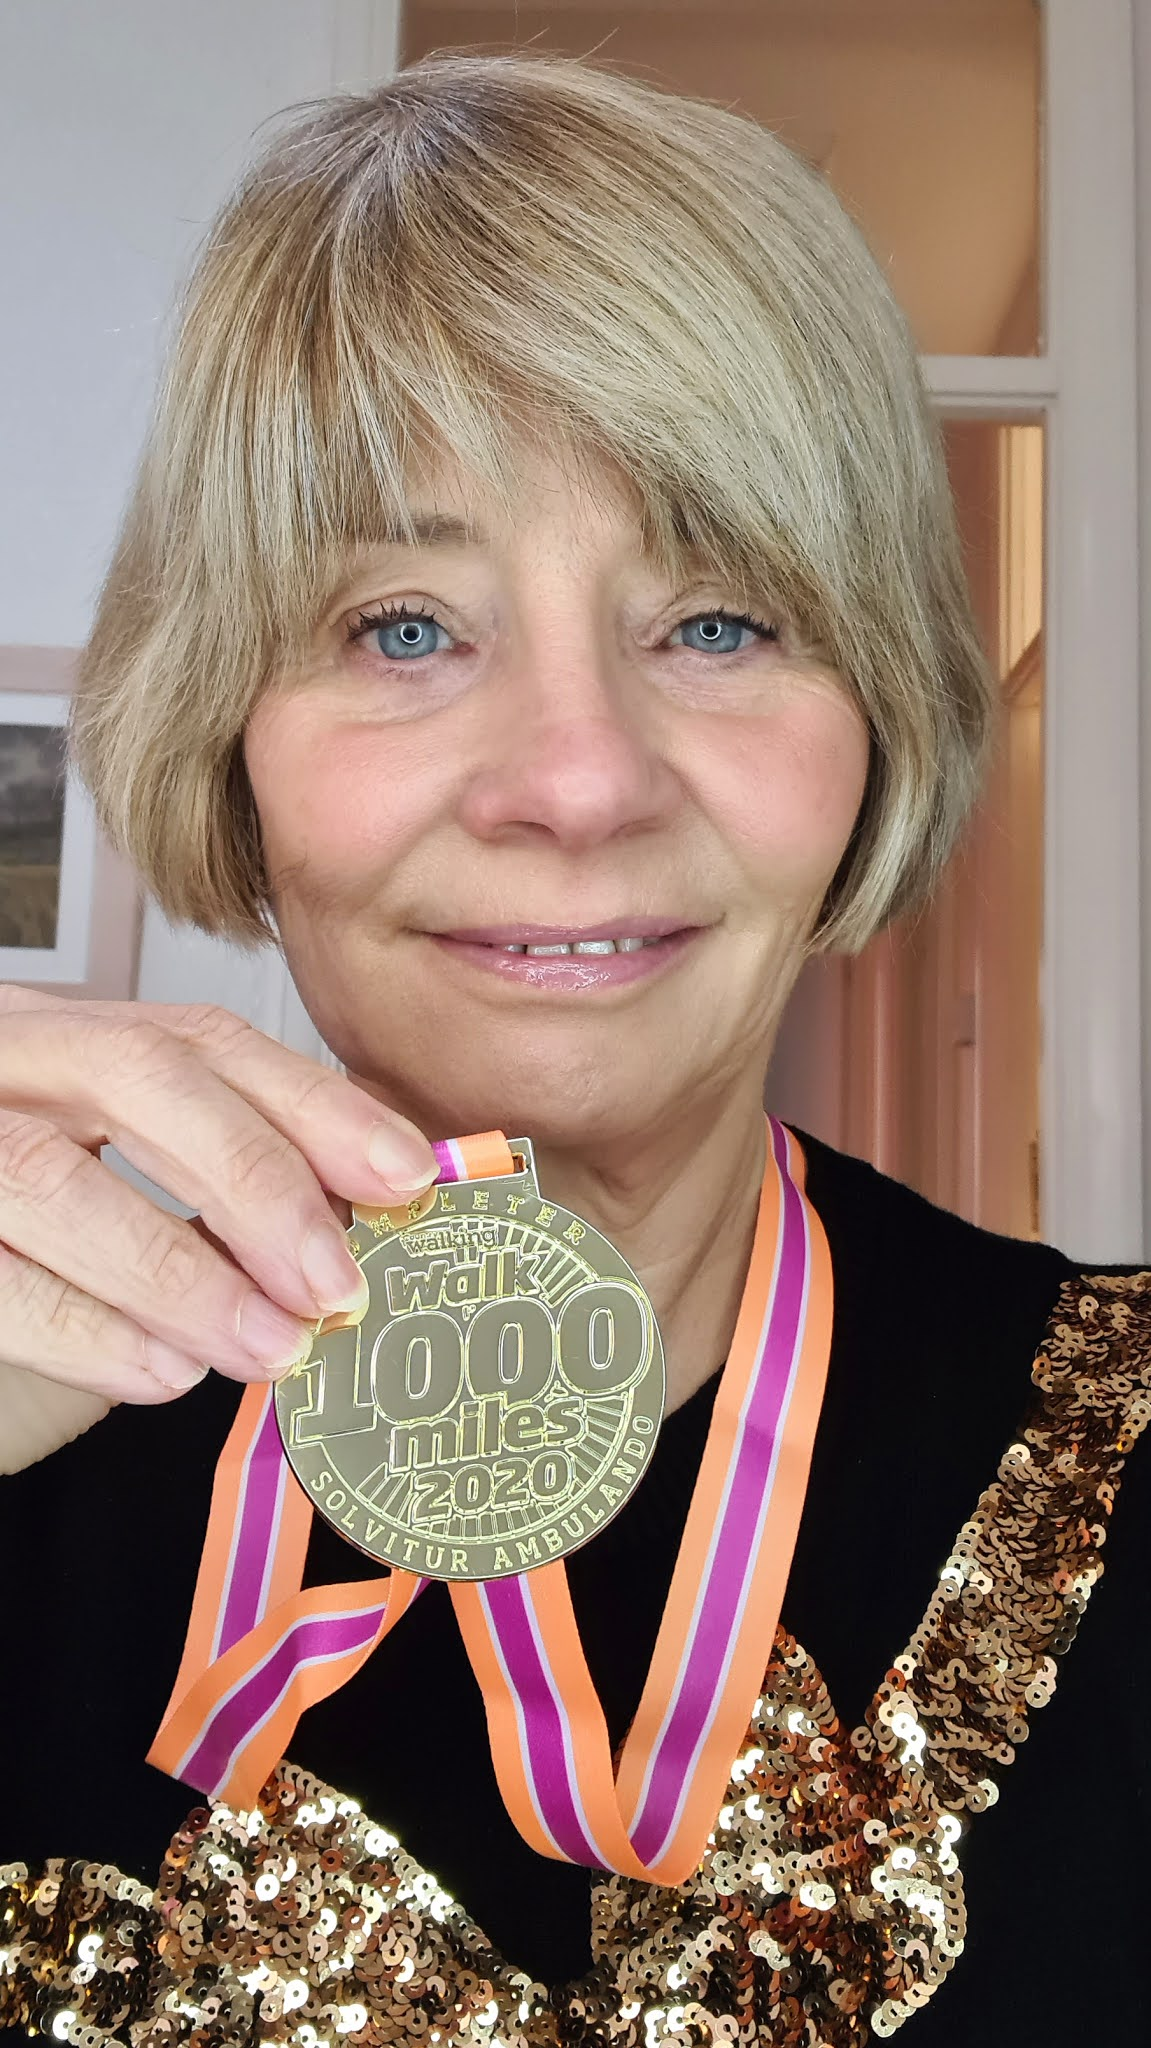 Walking is a good way to get fit, and the Walk 1000 Mile Challenge is good for motivation. Gail Hanlon from Is This Mutton shows off her medal from 2020